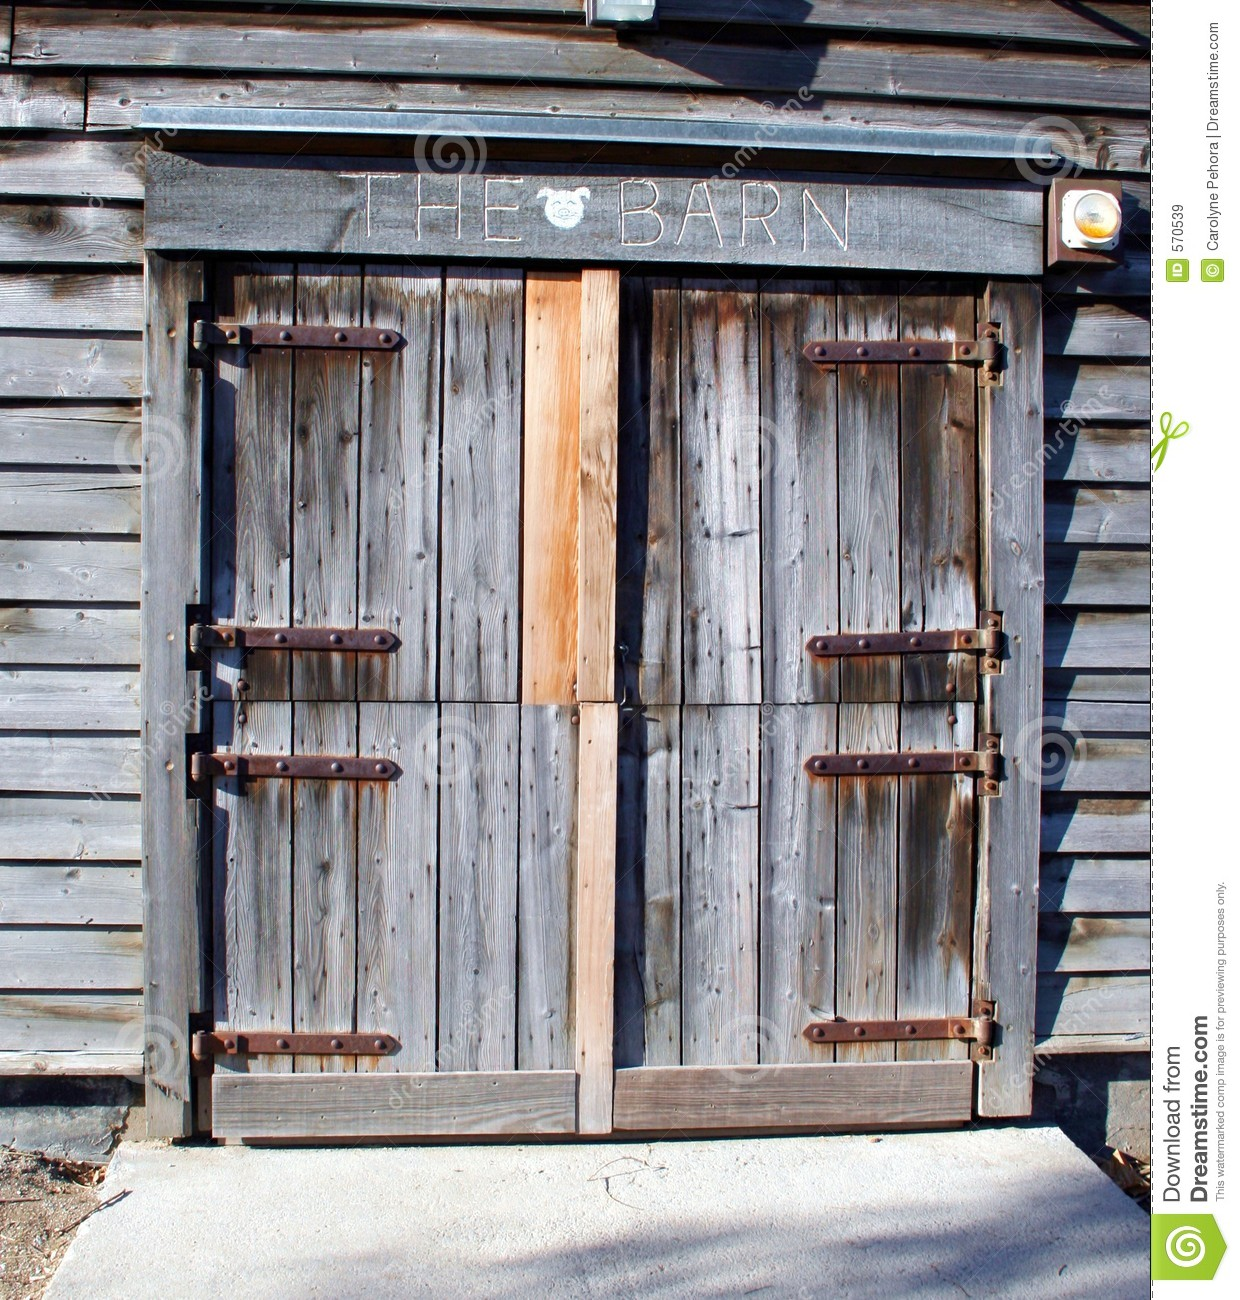 Barn door stock image image of grey rural hinges for Barn door pictures